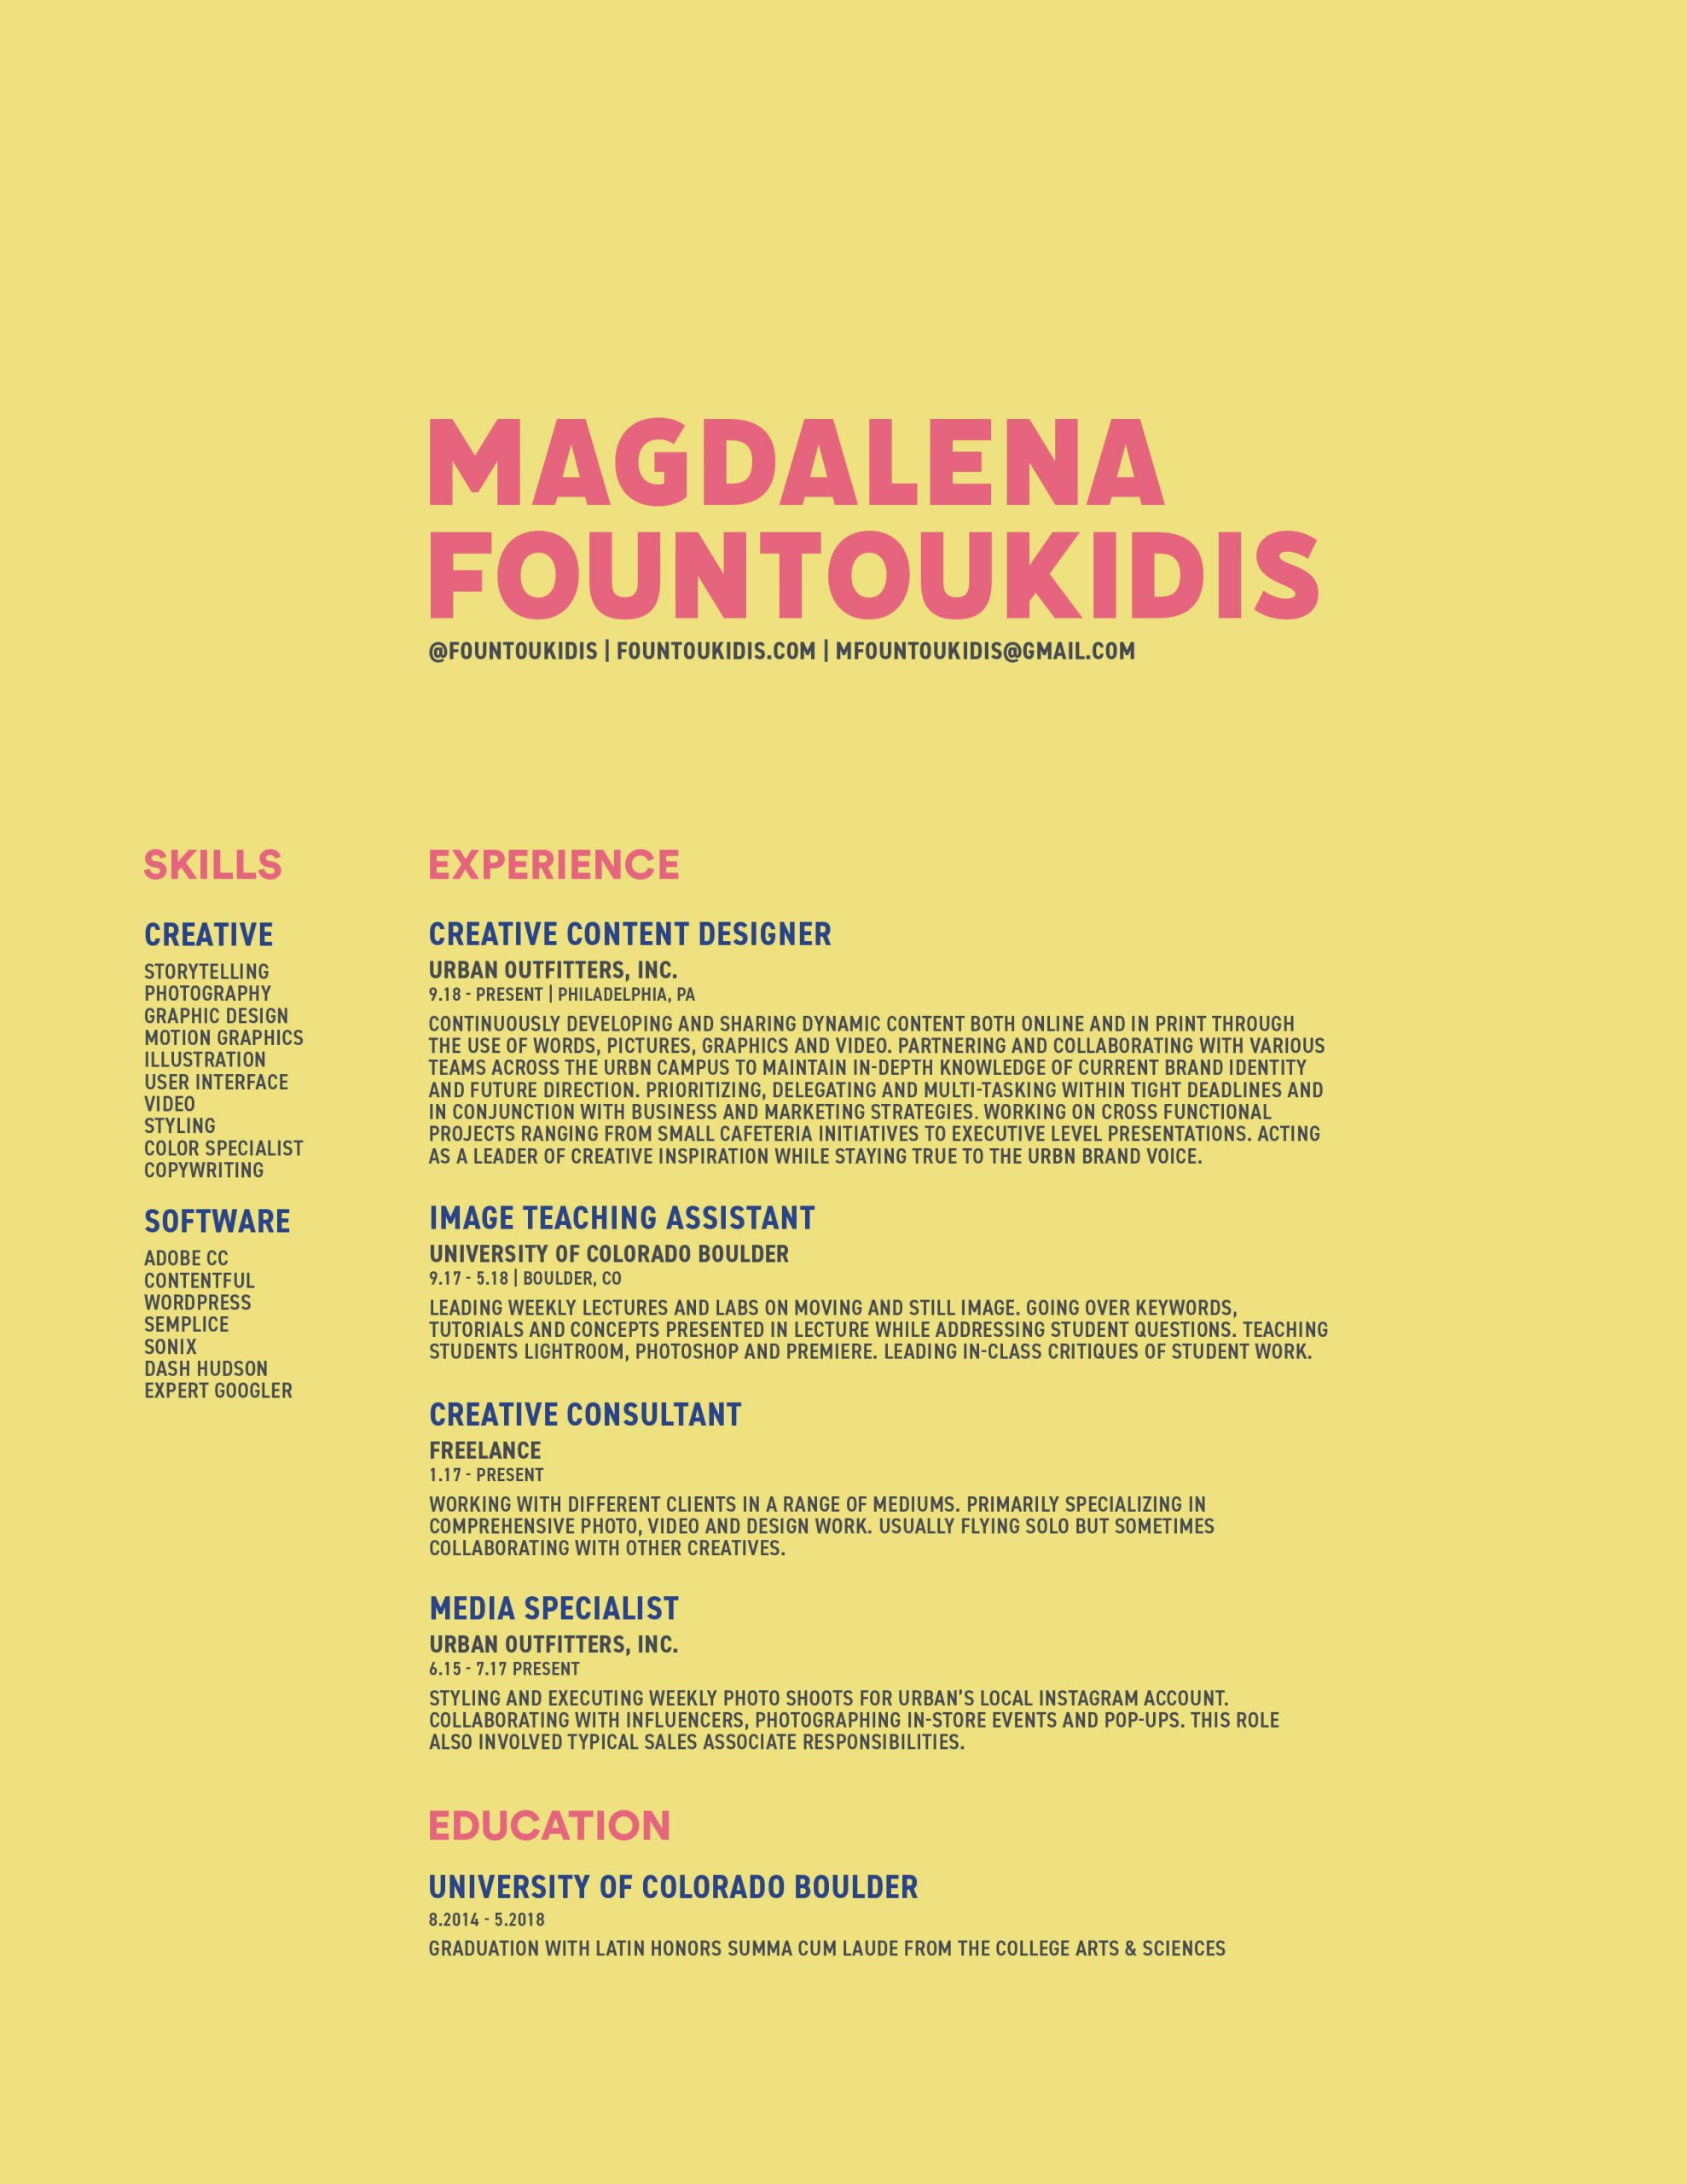 RESUME-fountoukidis